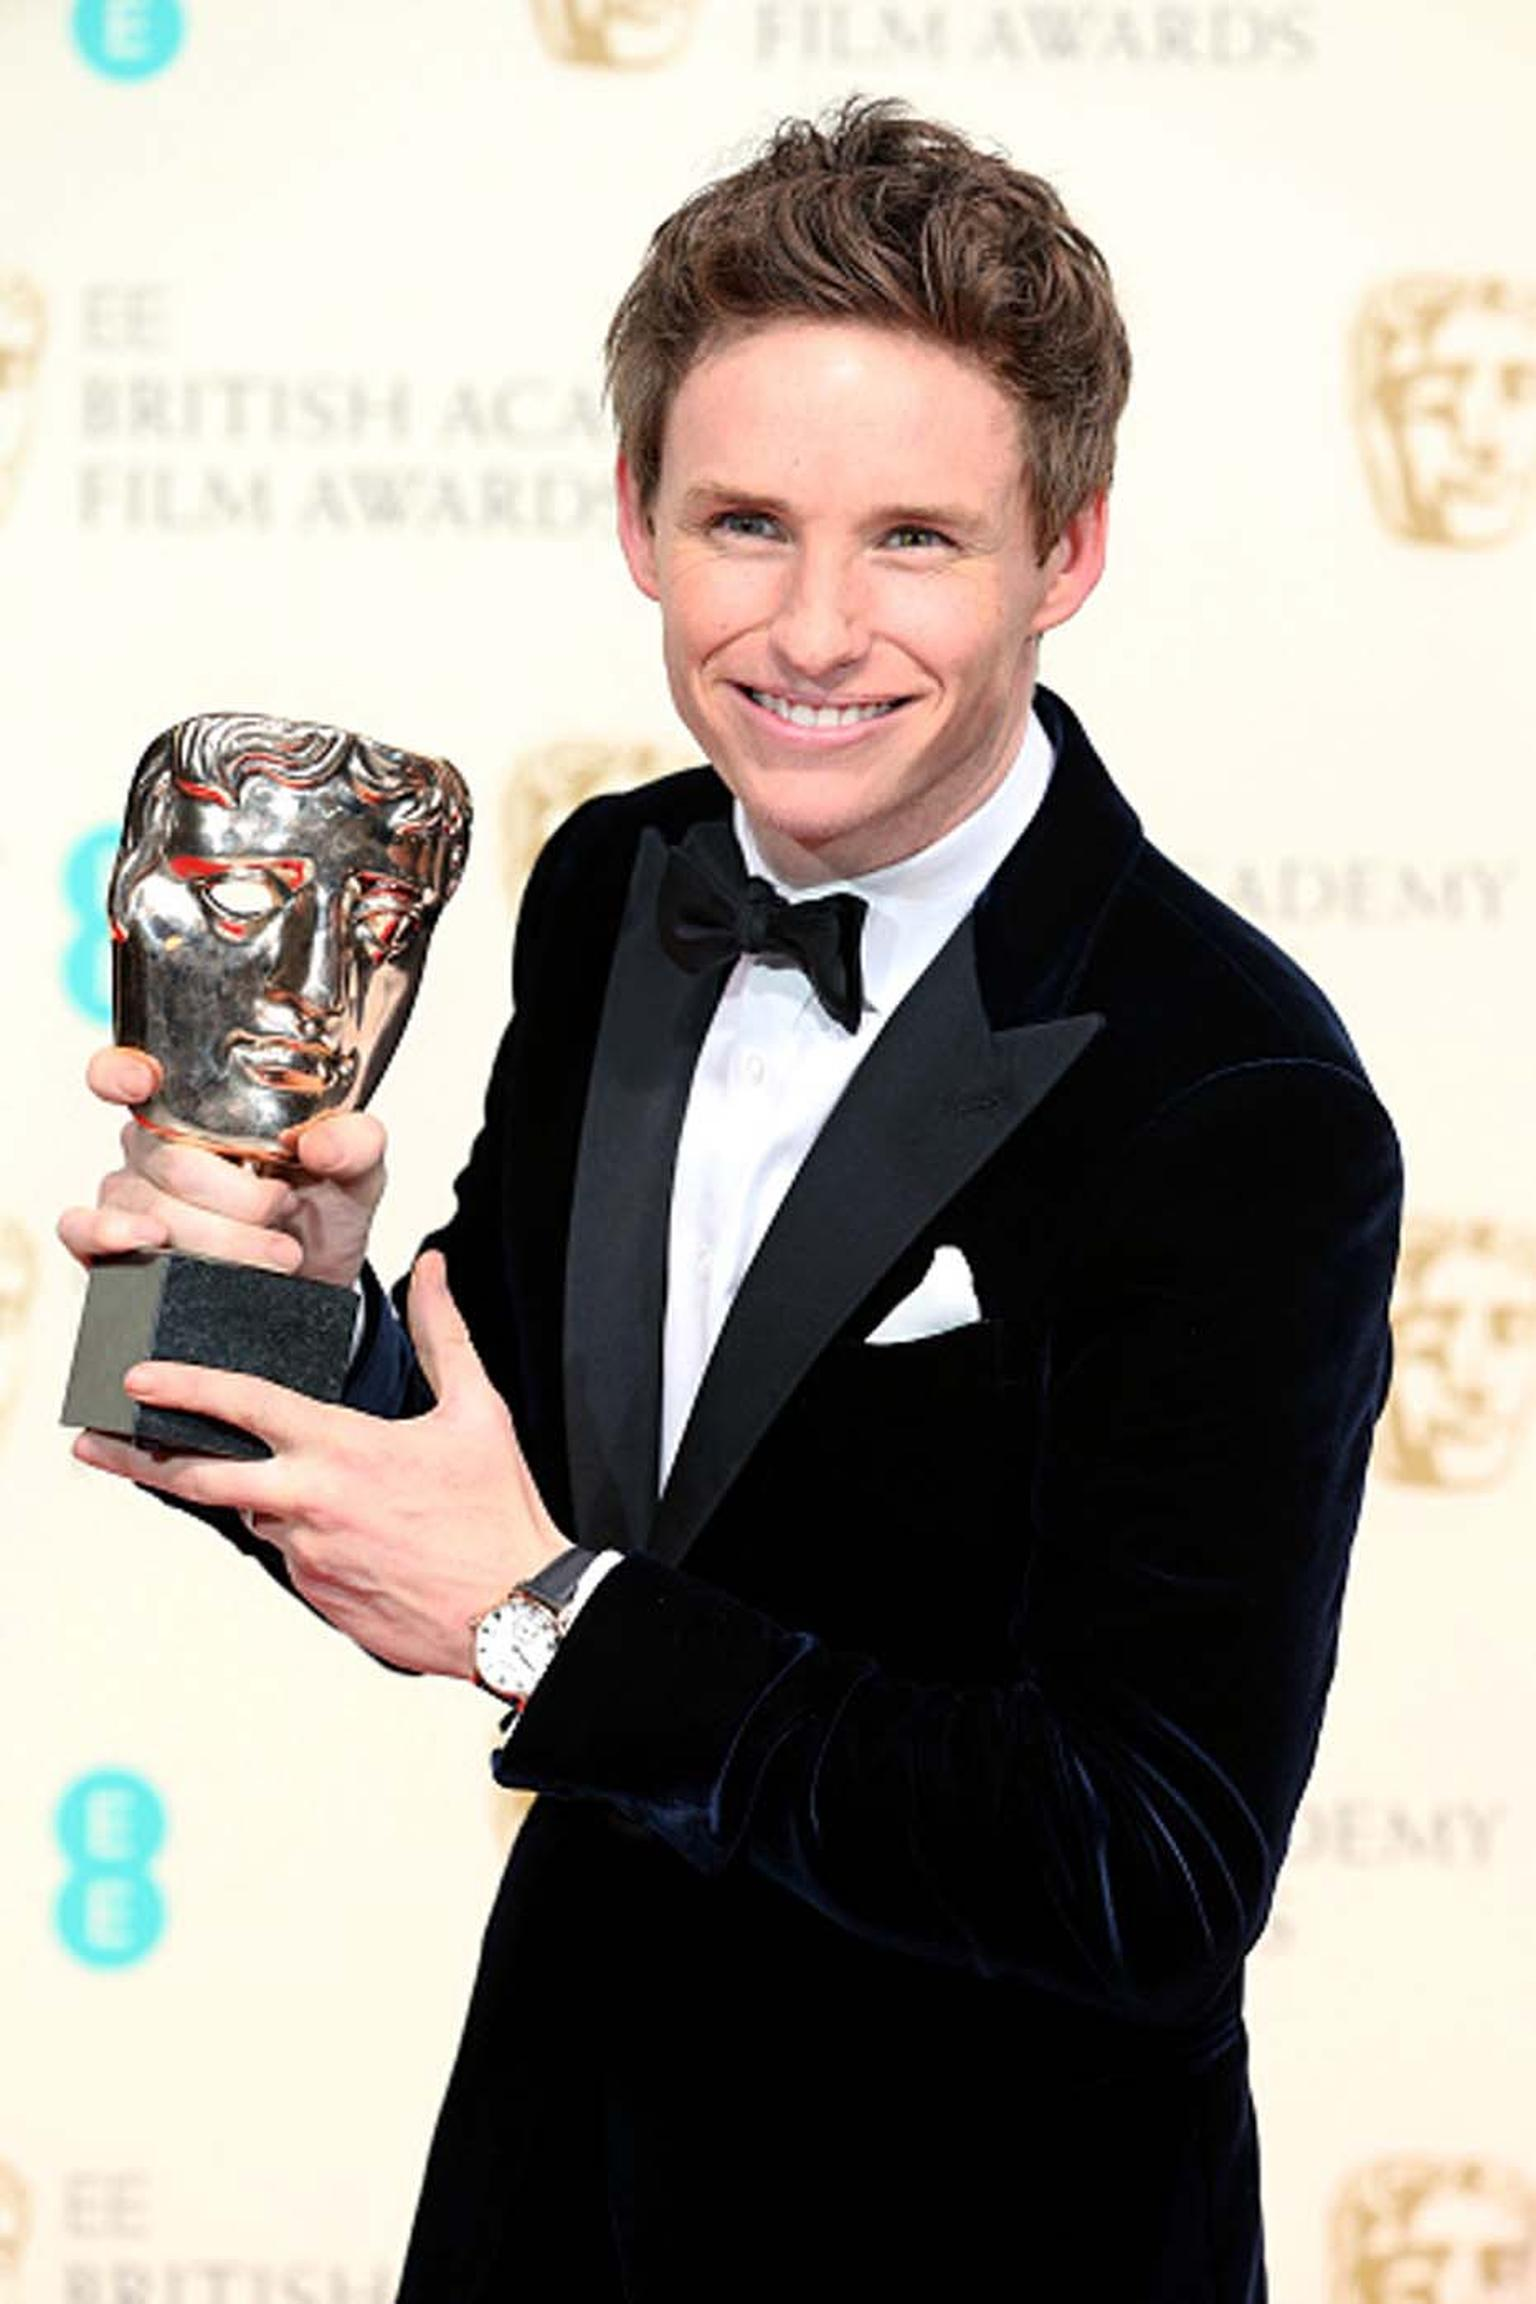 British actor Eddie Redmayne, who won the Leading Actor BAFTA (The Theory of Everything), walked the red carpet wearing a Chopard Classic Manufacture watch in rose gold.